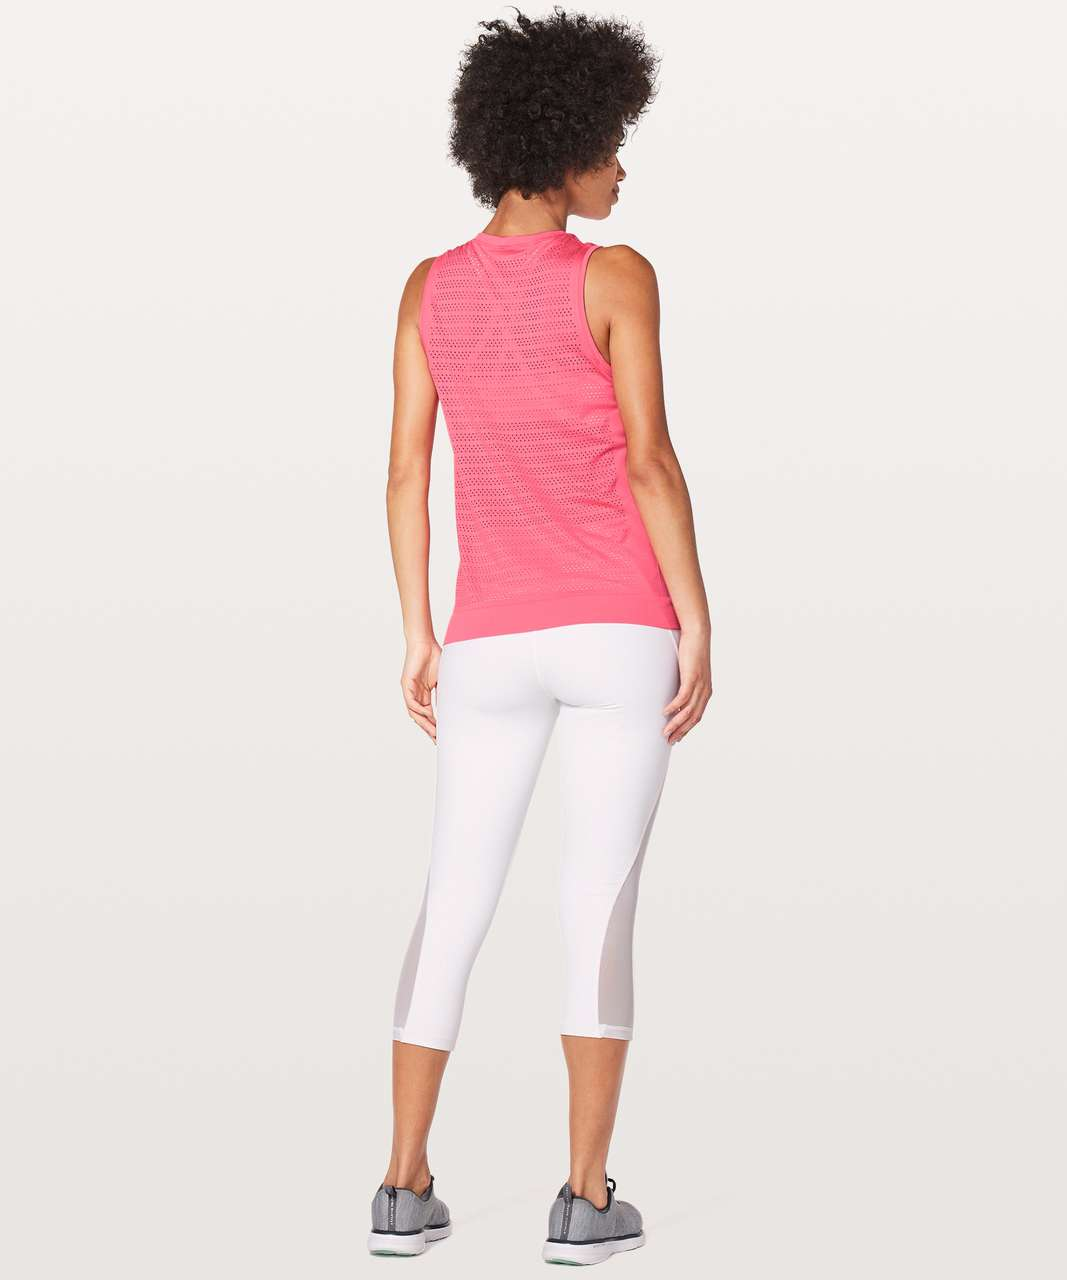 Lululemon Breeze By Muscle Tank II - Glossy / Glossy